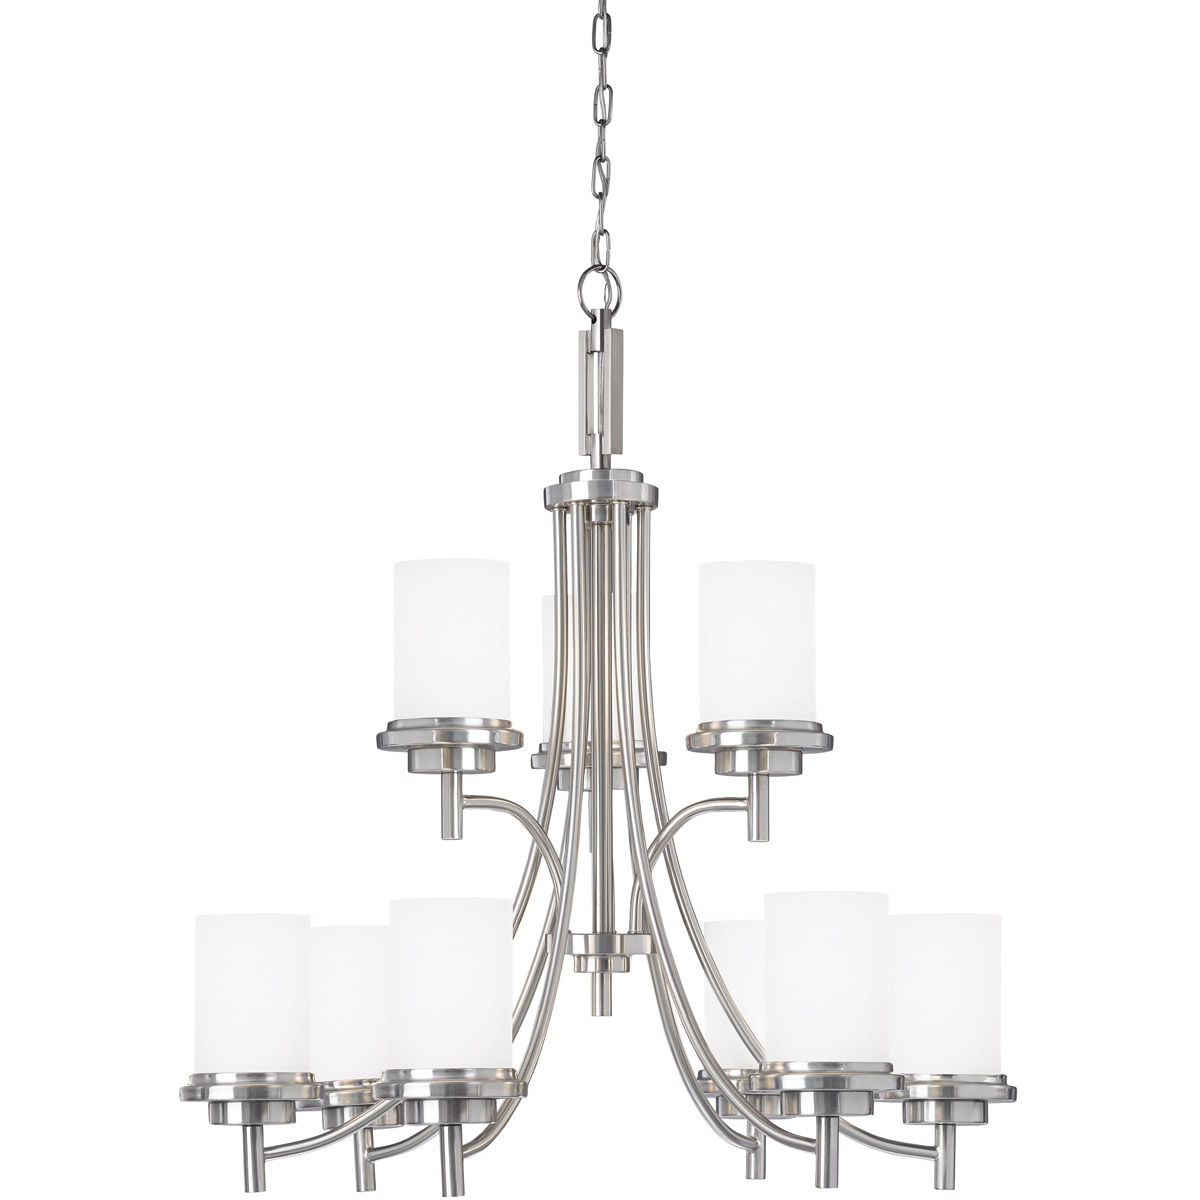 Sea Gull Lighting 962 Winnetka Chandelier Brushed